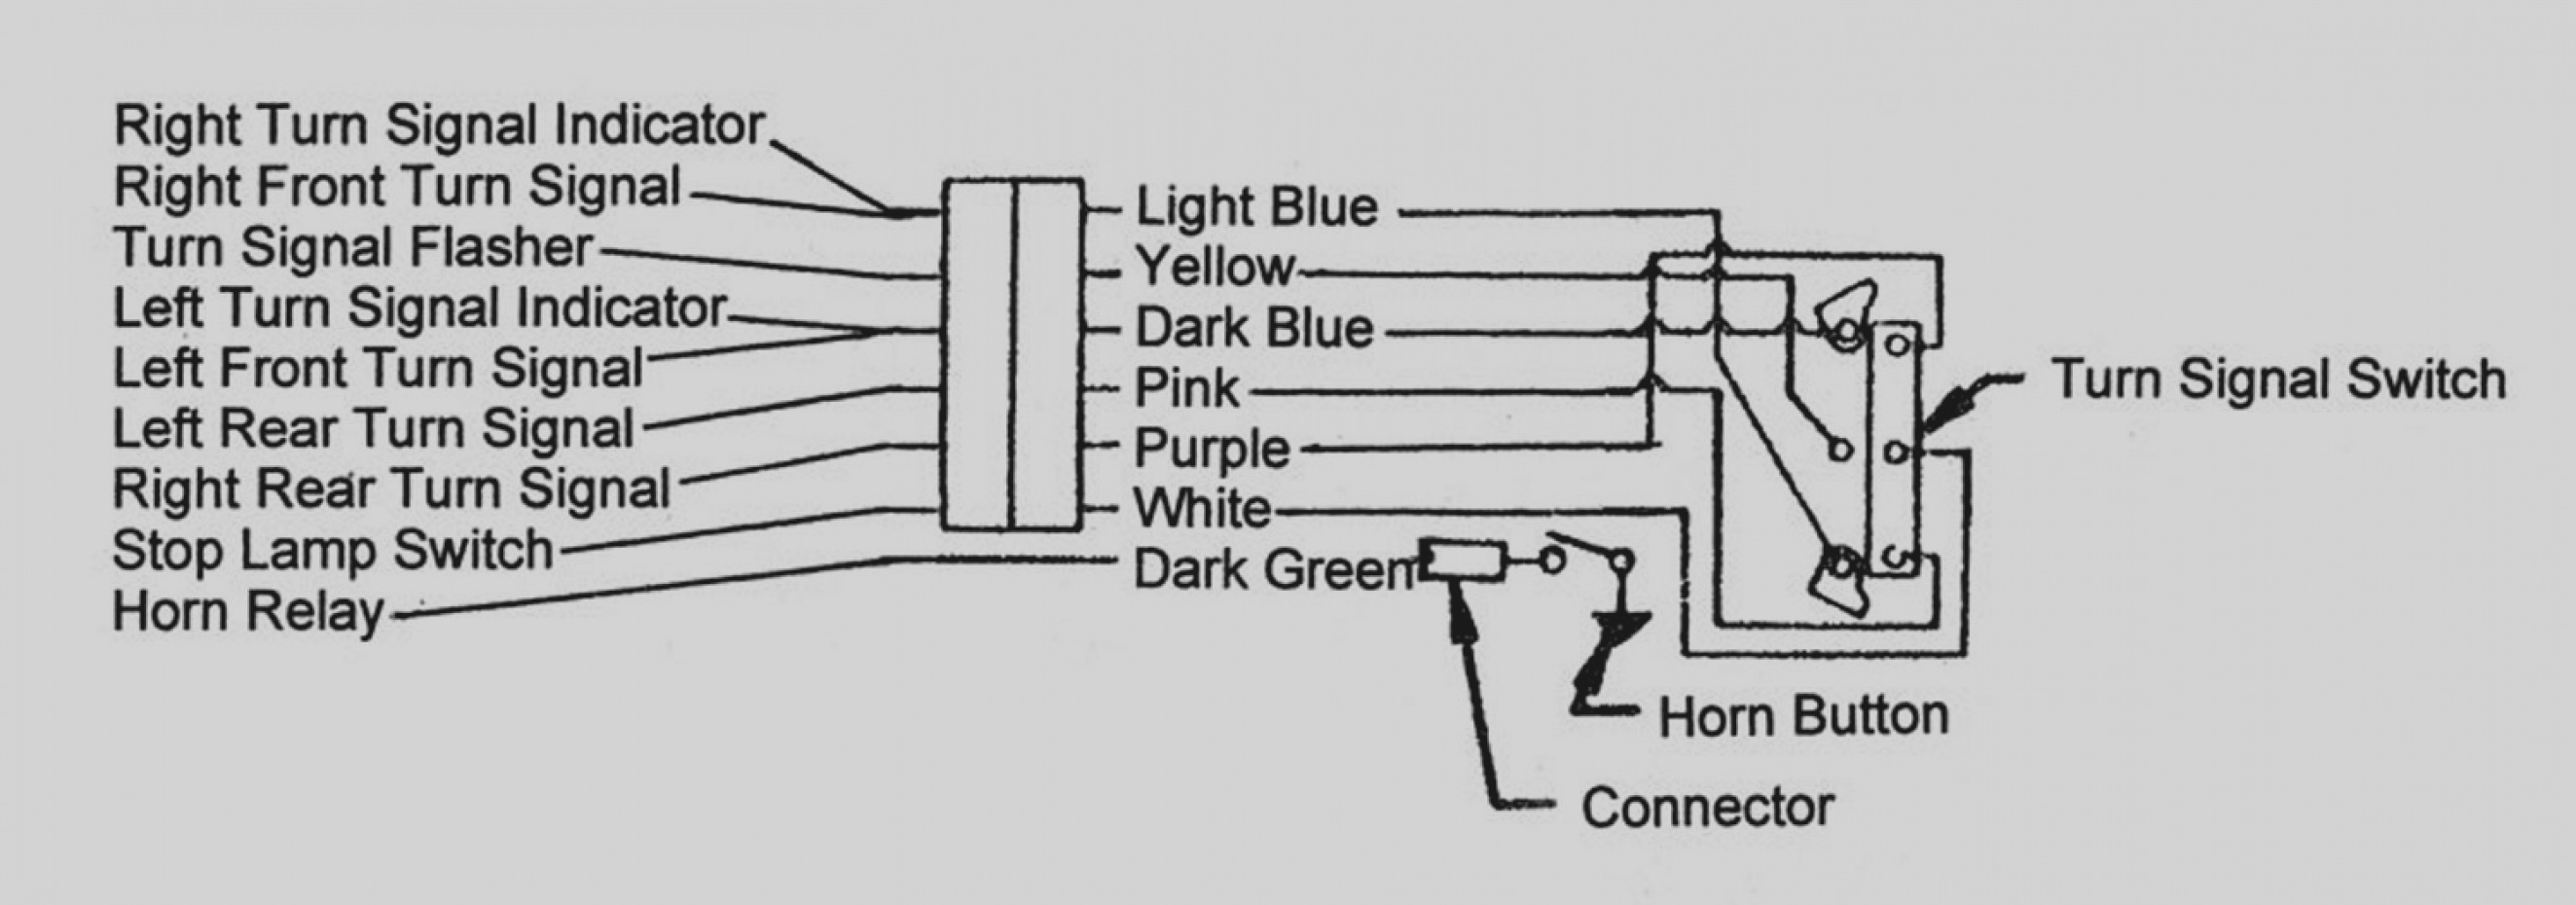 76 Gm Turn Signal Wire Schematic - Wiring Diagrams Cheap Jeep Jeepster Wiring Diagram Html on